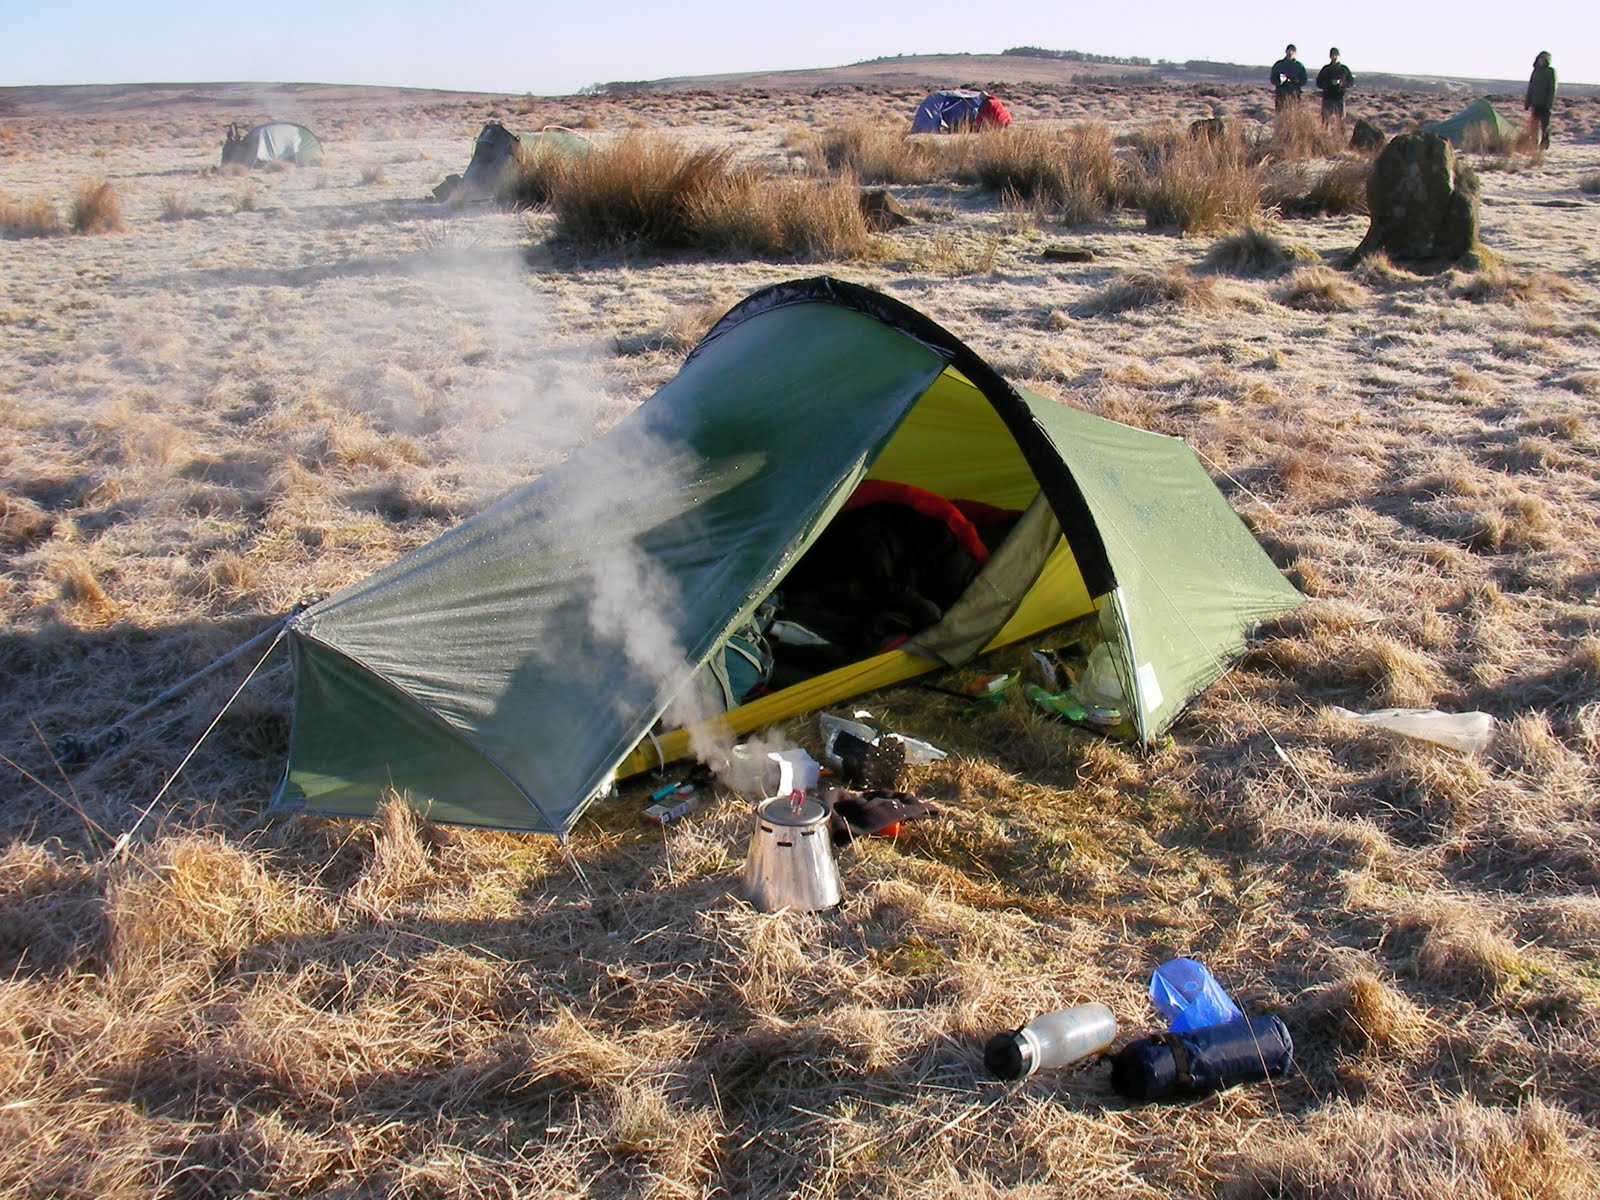 Iu0027ve used this tent in all seasons and in conditions it really isnu0027t designed for. But itu0027s survived and lived to tell the tale albeit with some much needed ... : laser comp tent - memphite.com